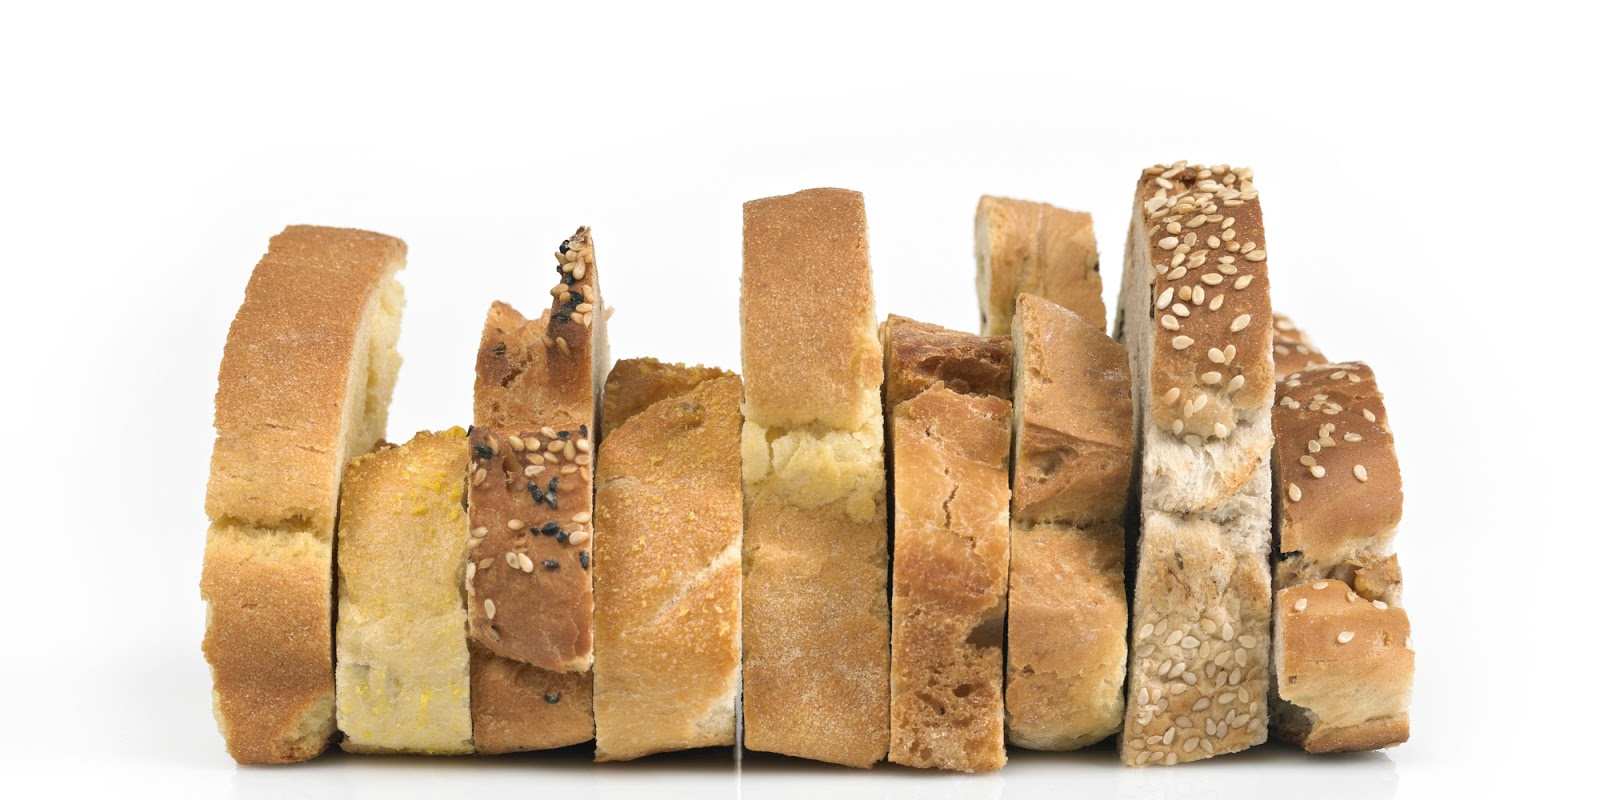 Why We Love Whole Grains